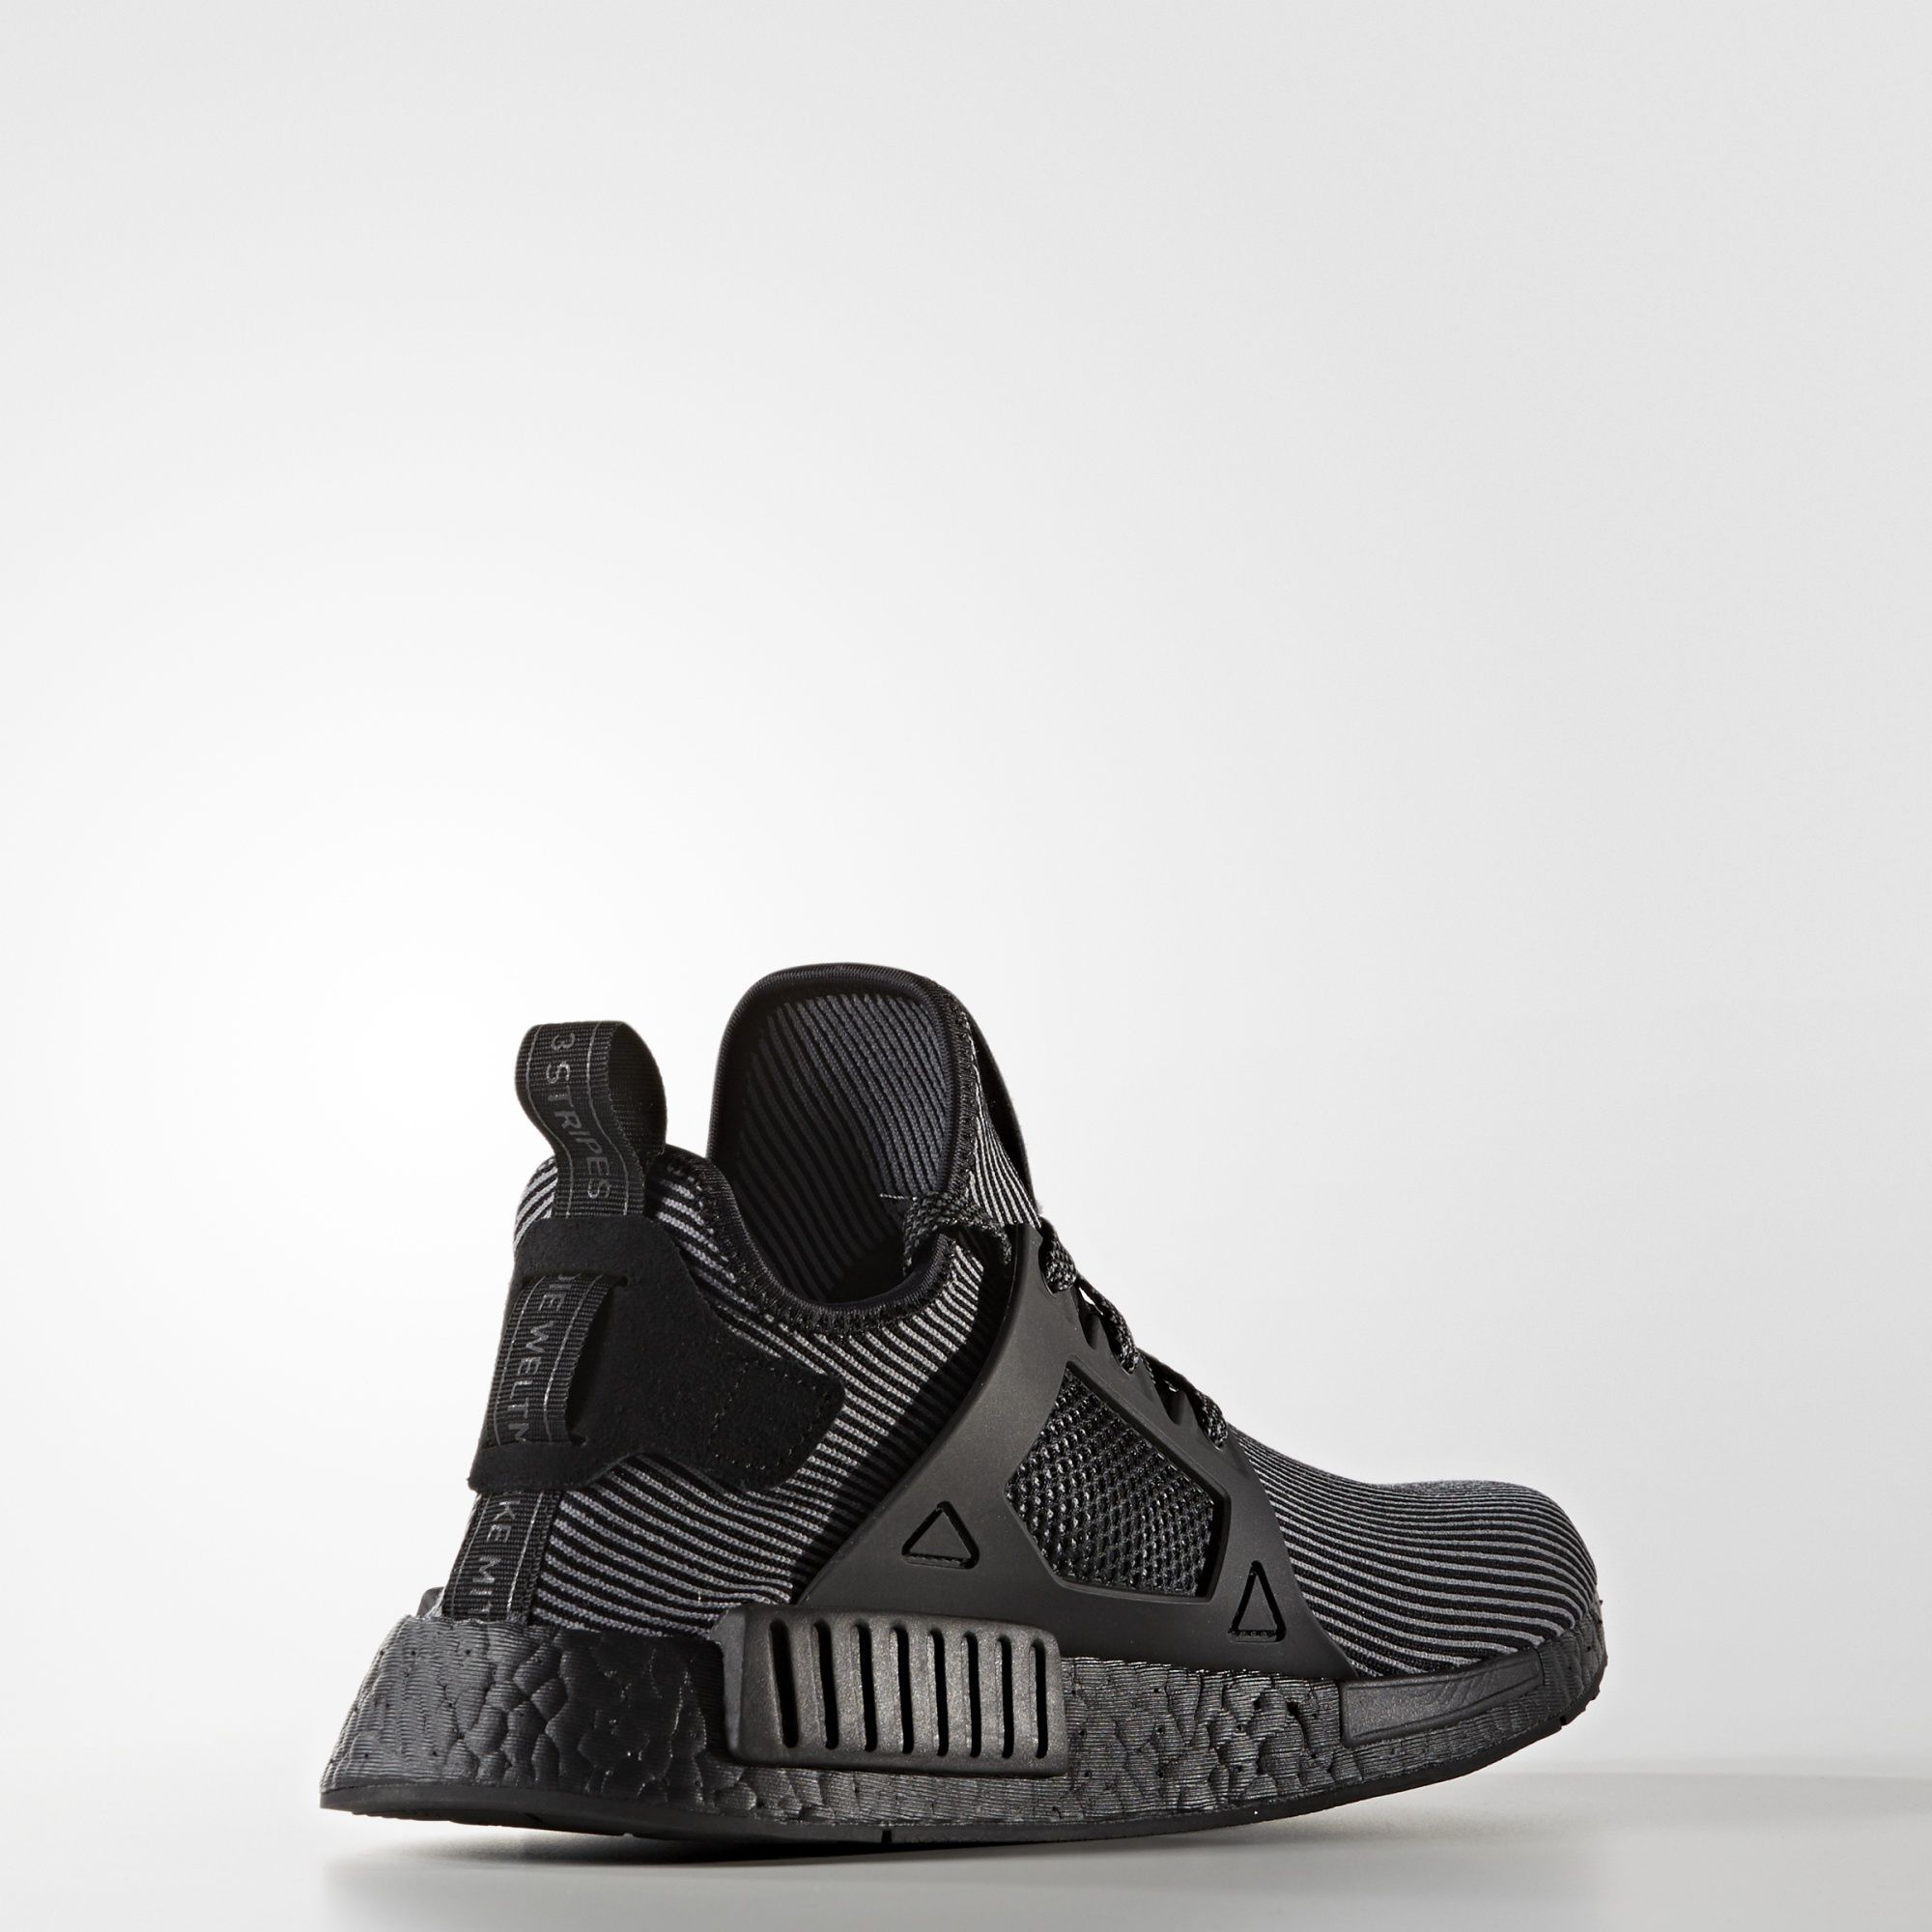 adidas-nmd-xr1-s32211-release-20160917